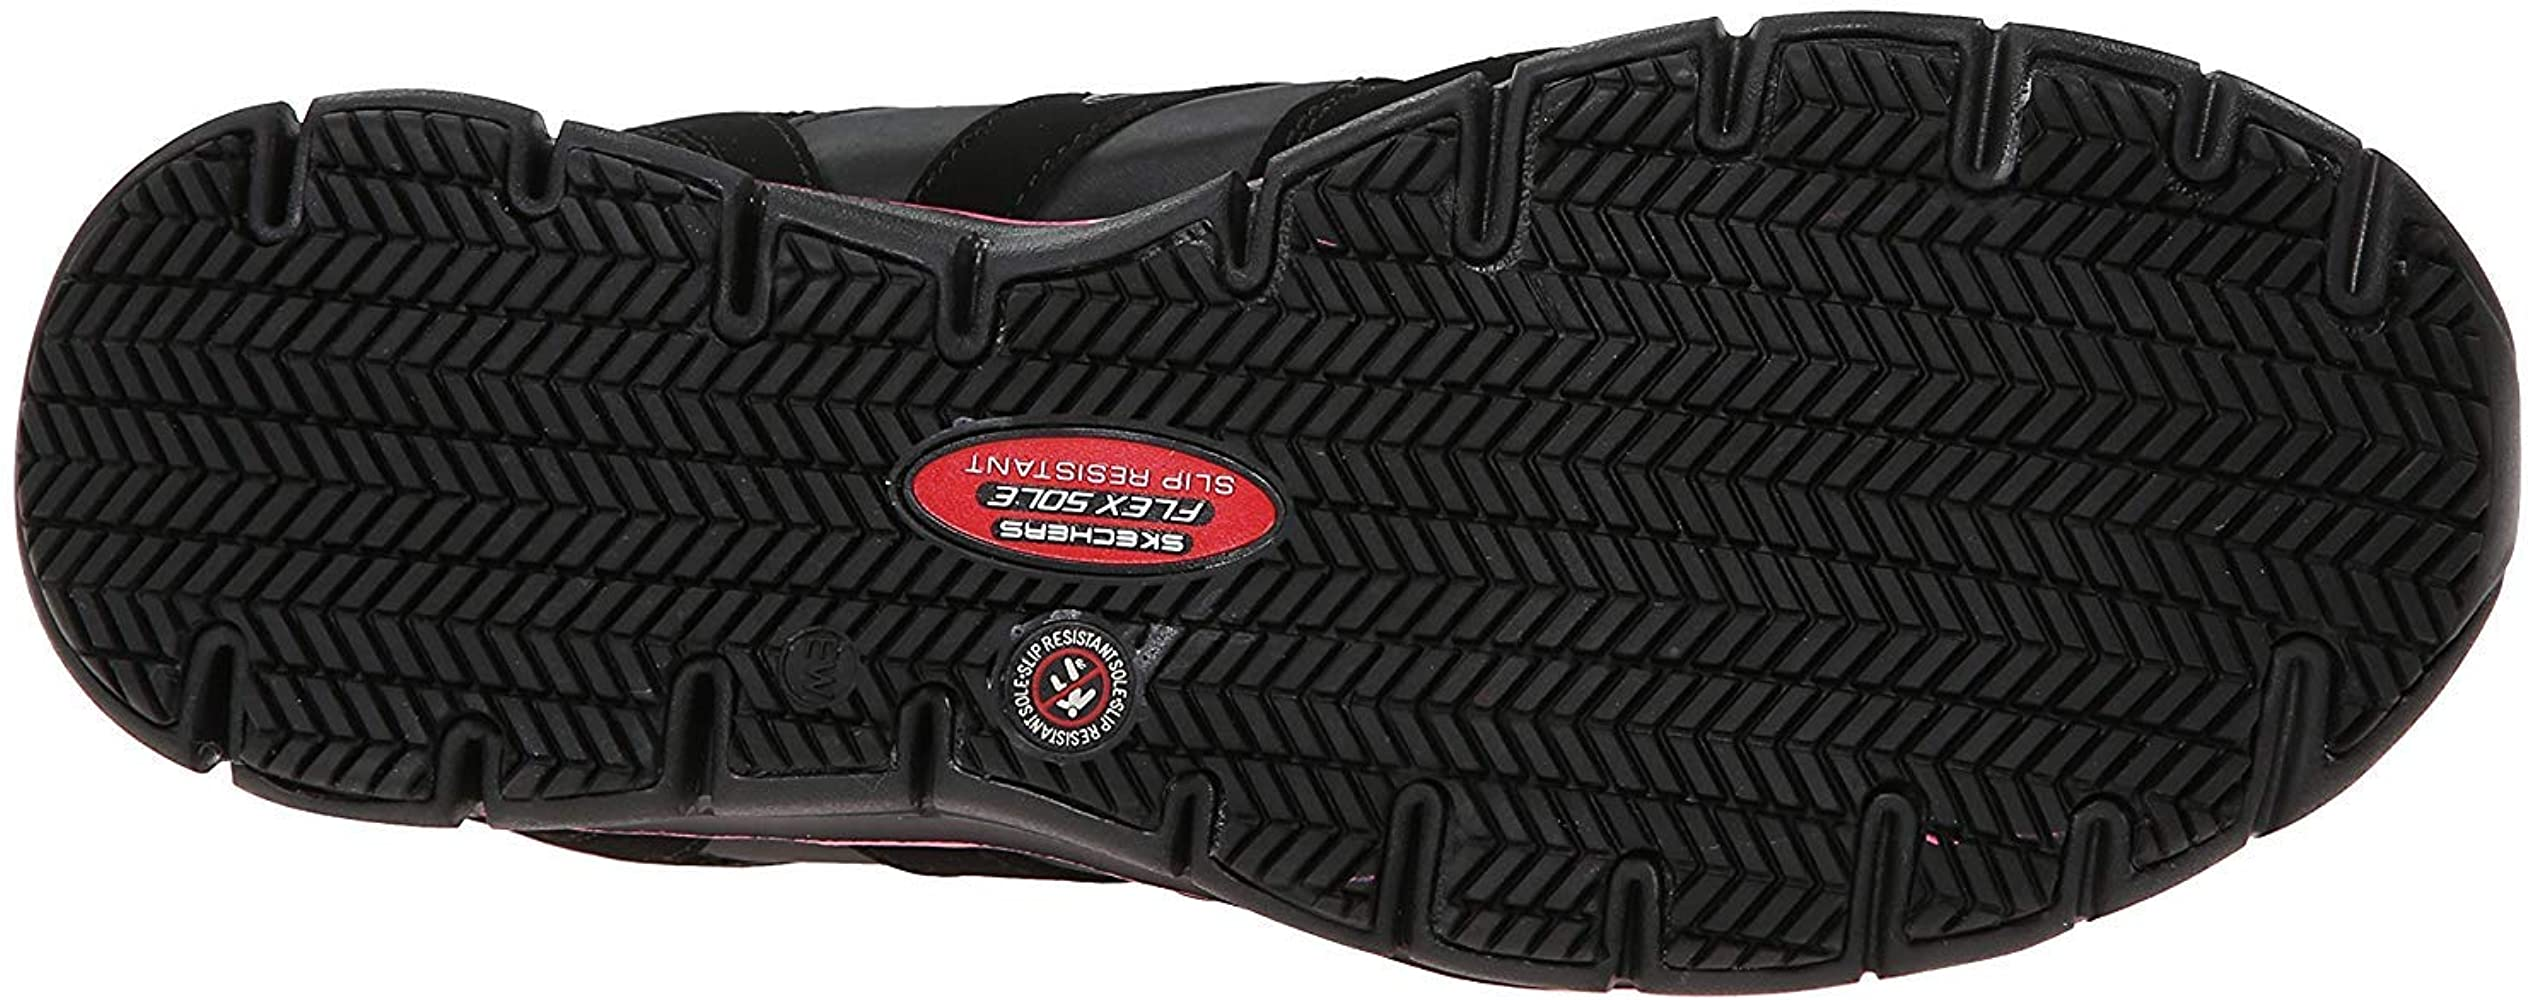 Details about  /McRae Women/'s 3 Inch Metatarsal Guard Slip On Comp